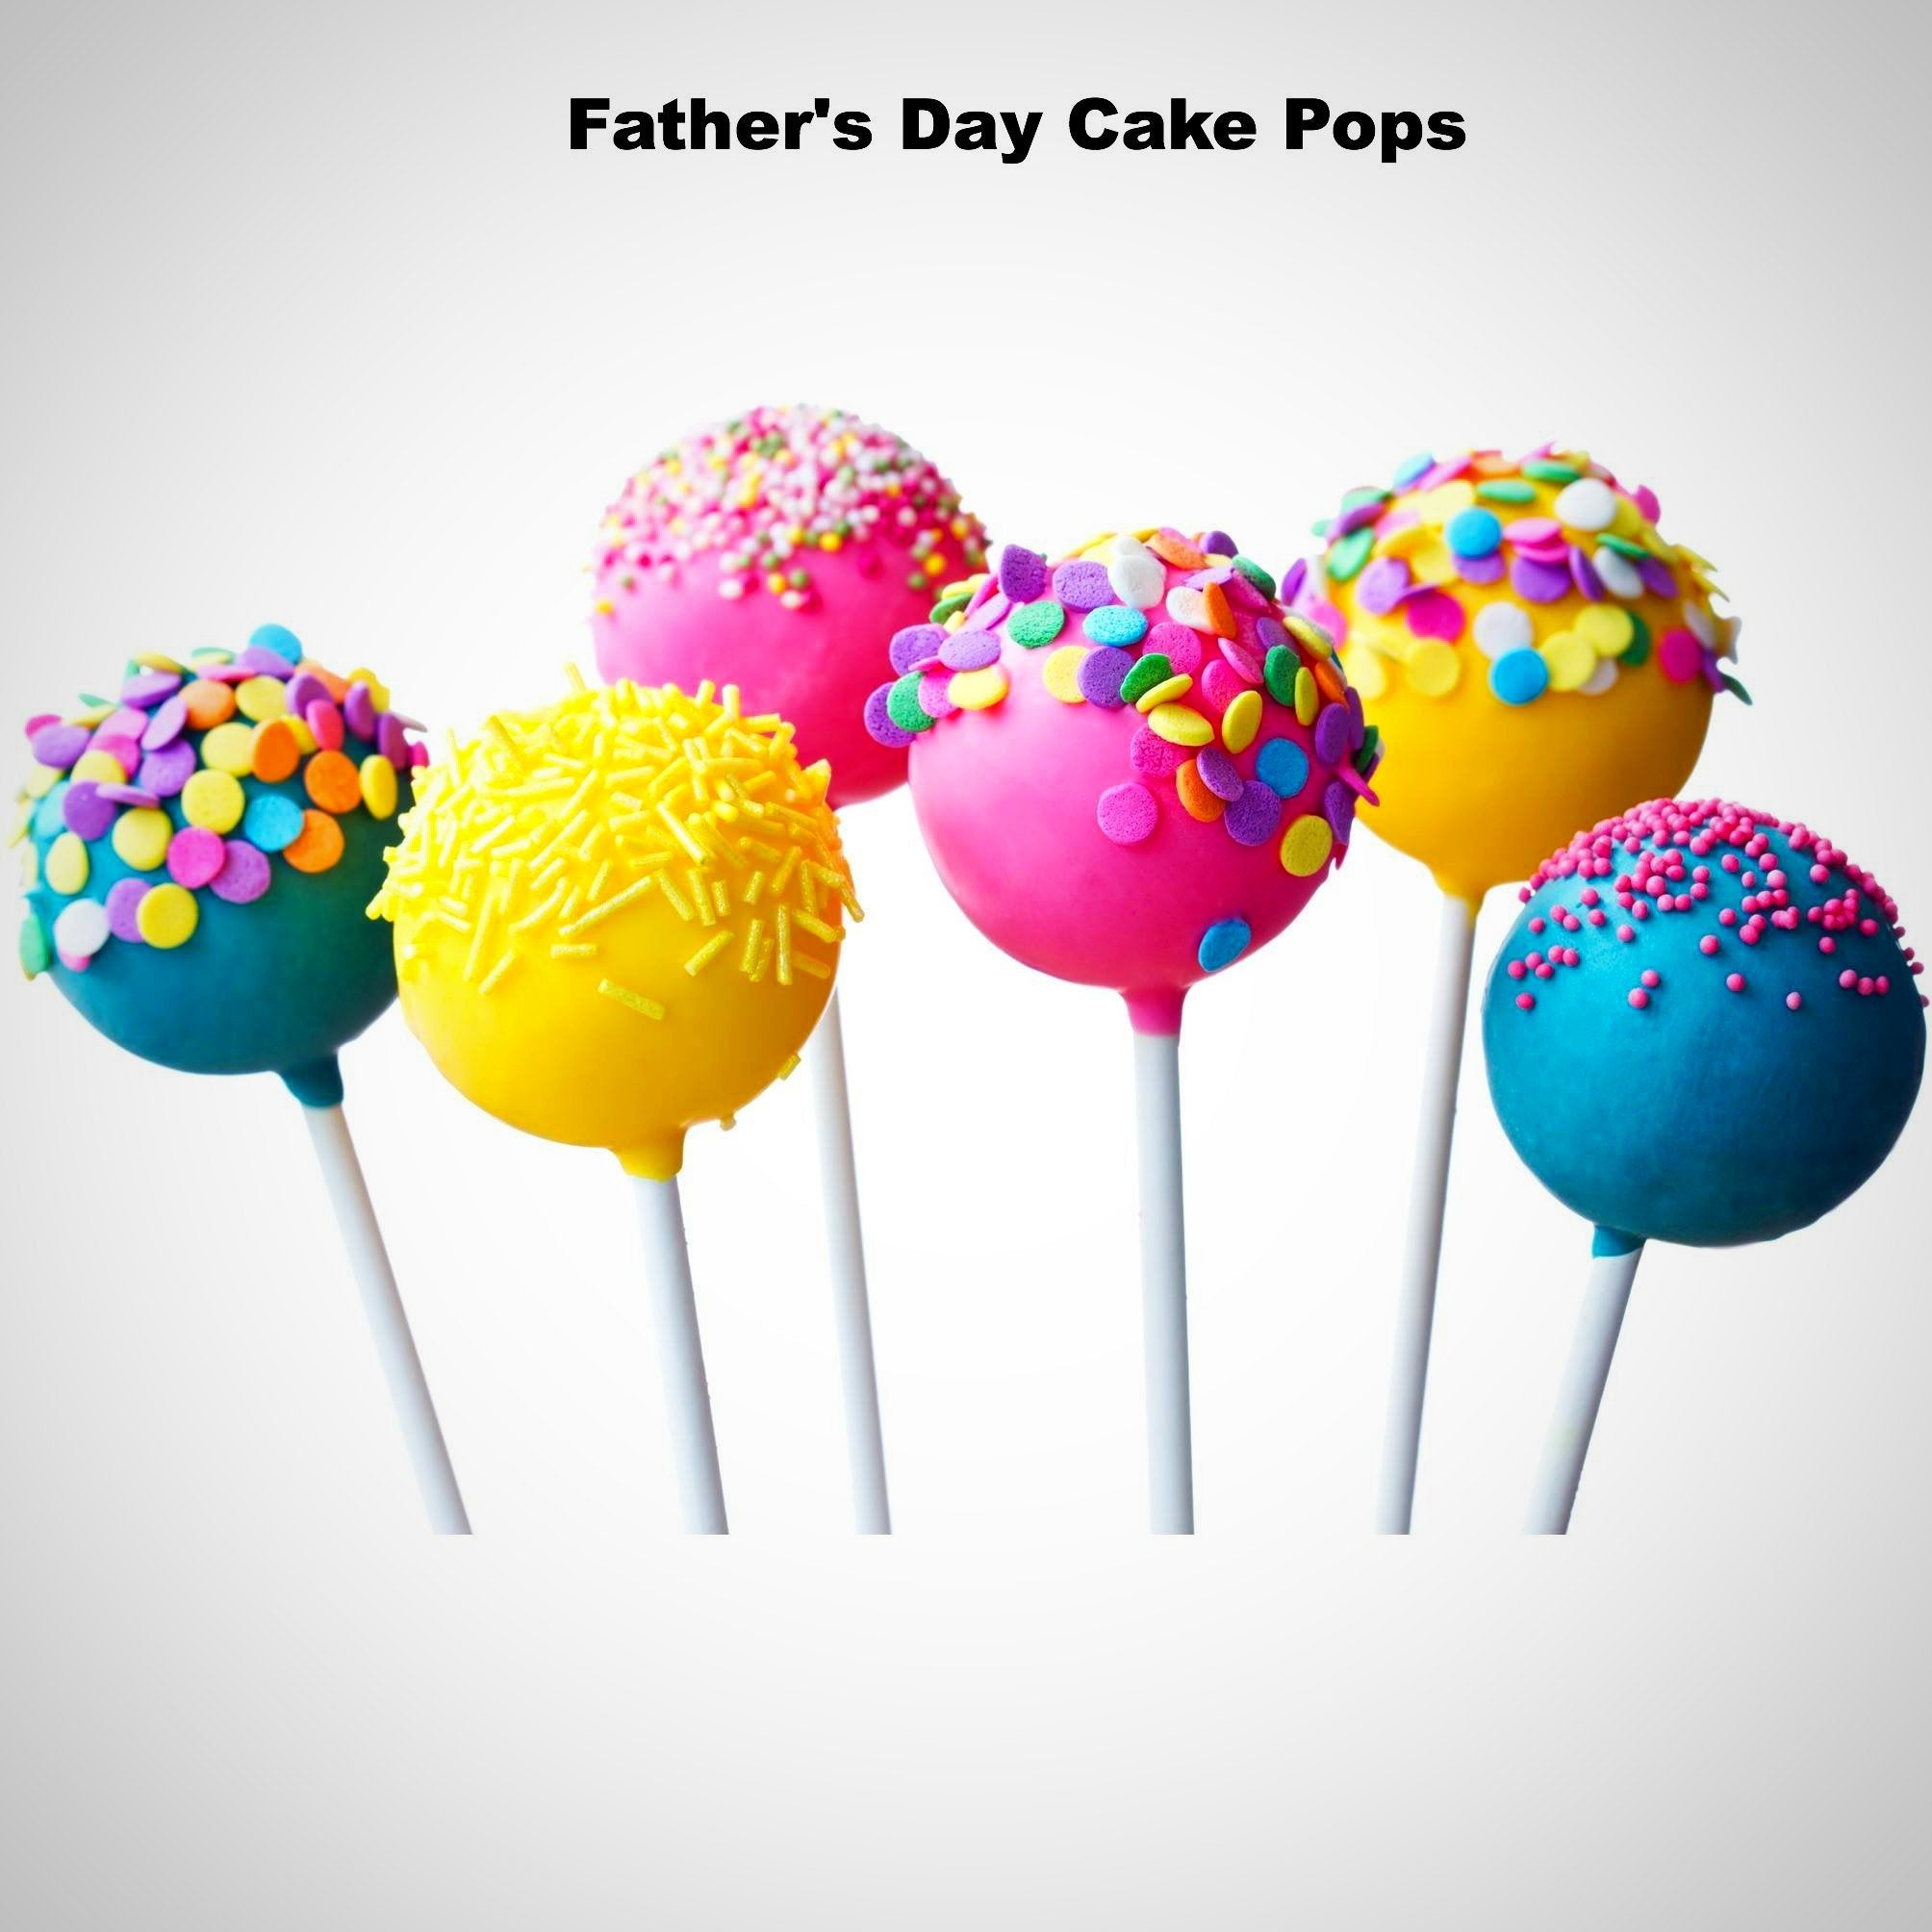 Buy Cake Pops For Father's Day - Cake Pops Parties